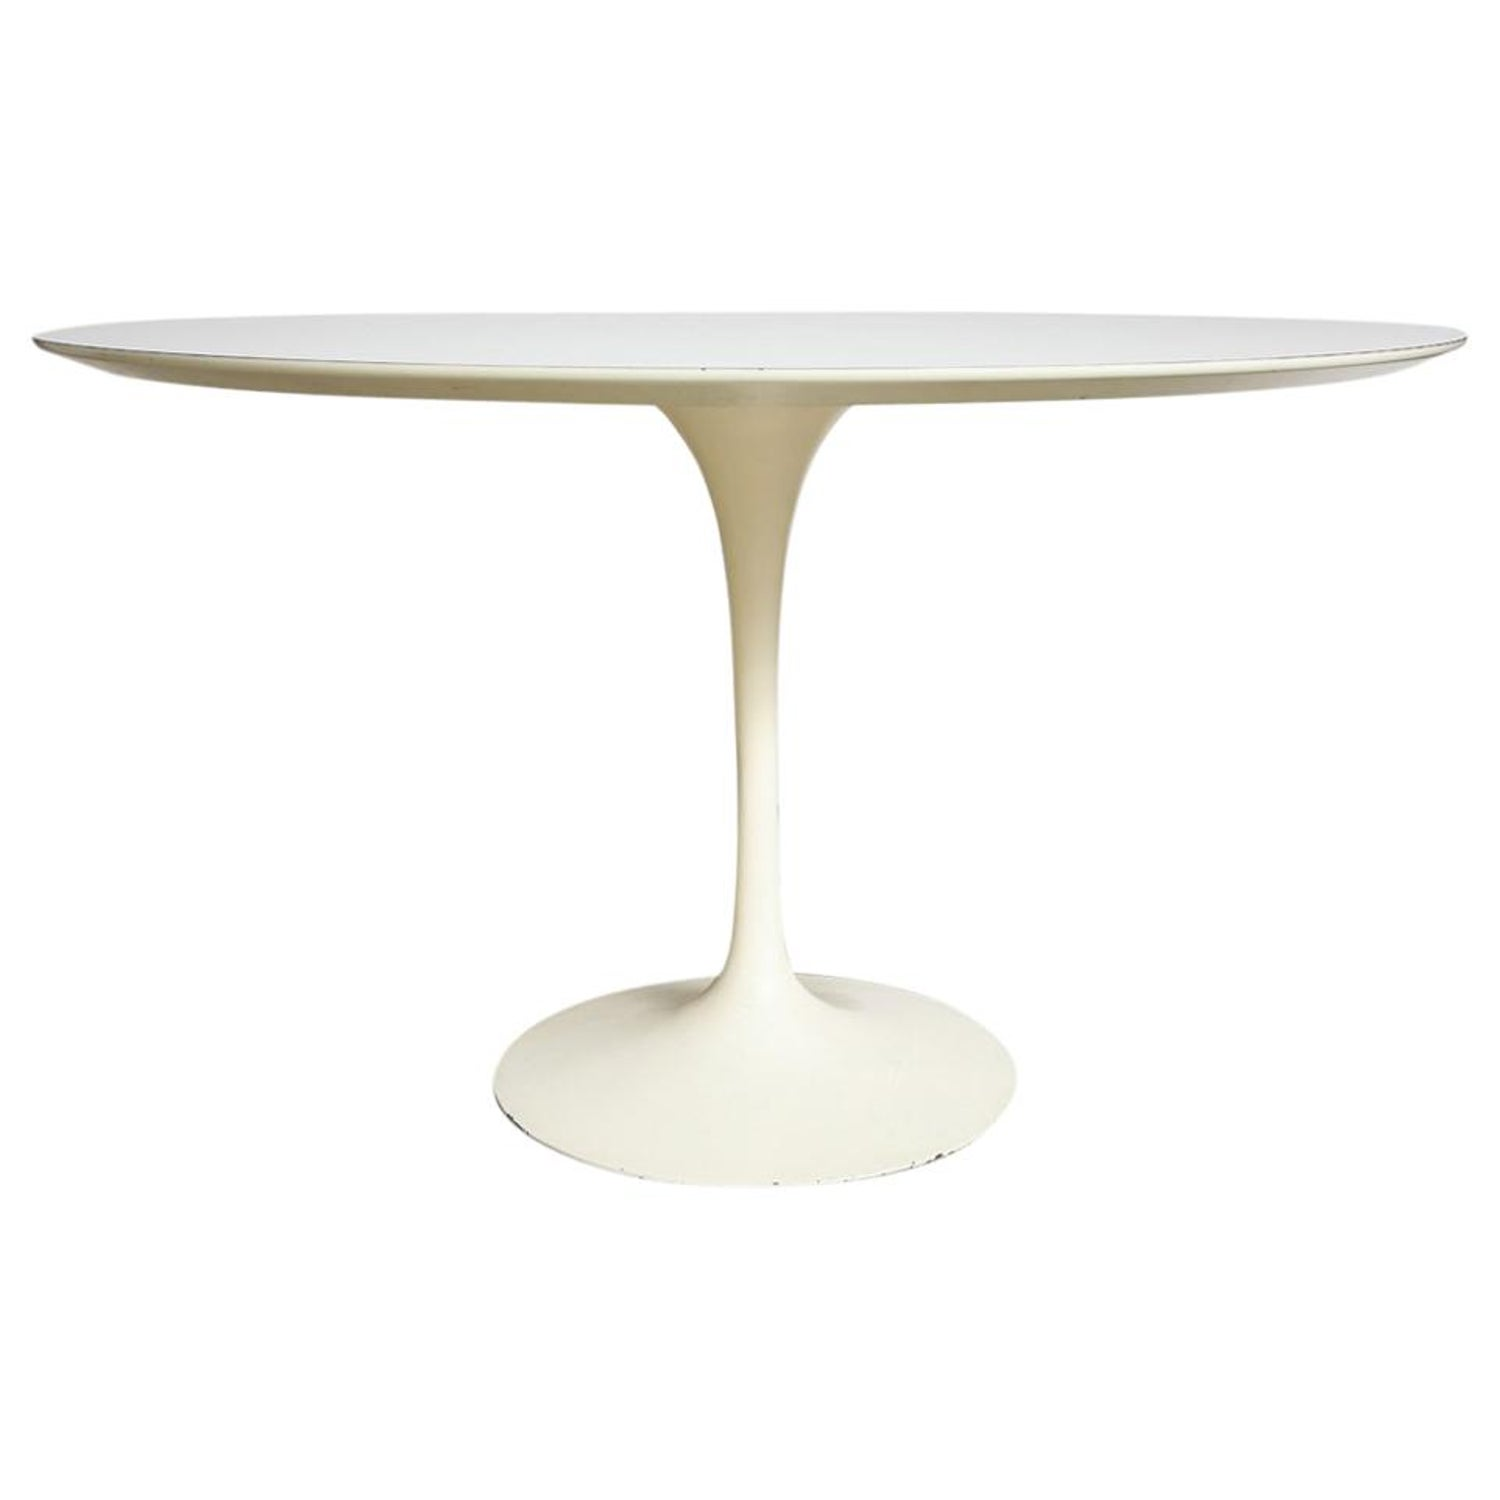 d06dfeaf23c0 Knoll Saarinen Round Dining Table White Laminate Cast Iron at 1stdibs